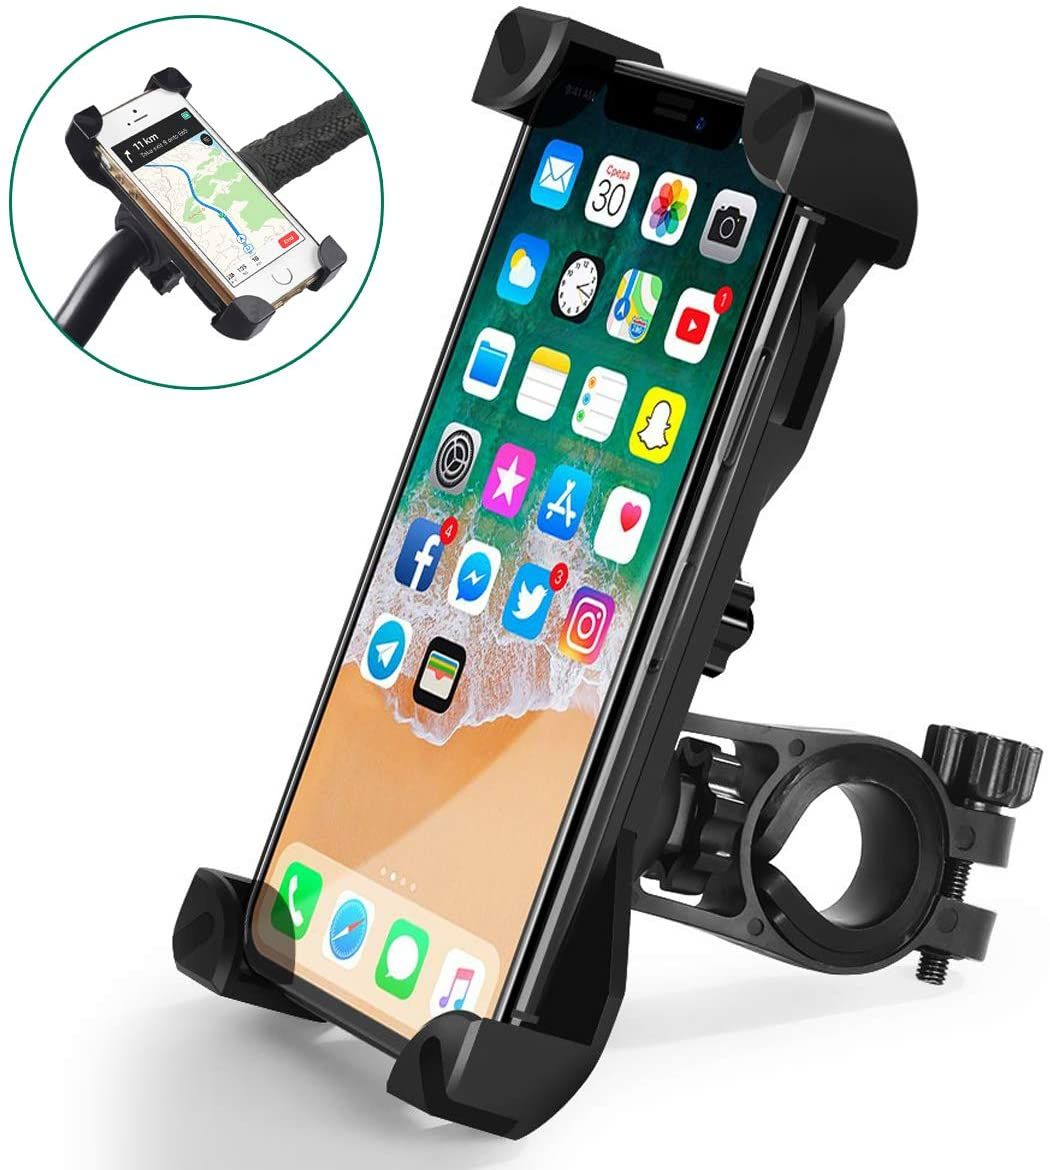 Galaxy S9 S8 Plus and All 3.5 to 6.5 Phone Cell Phone Holder Suit for iPhone XR Xs Max Xs X 8 7 6 Plus Leepiya Motorcycle Phone Mount with Charger 5V 2.4A USB Port Install on Handlebar//Mirror Bar